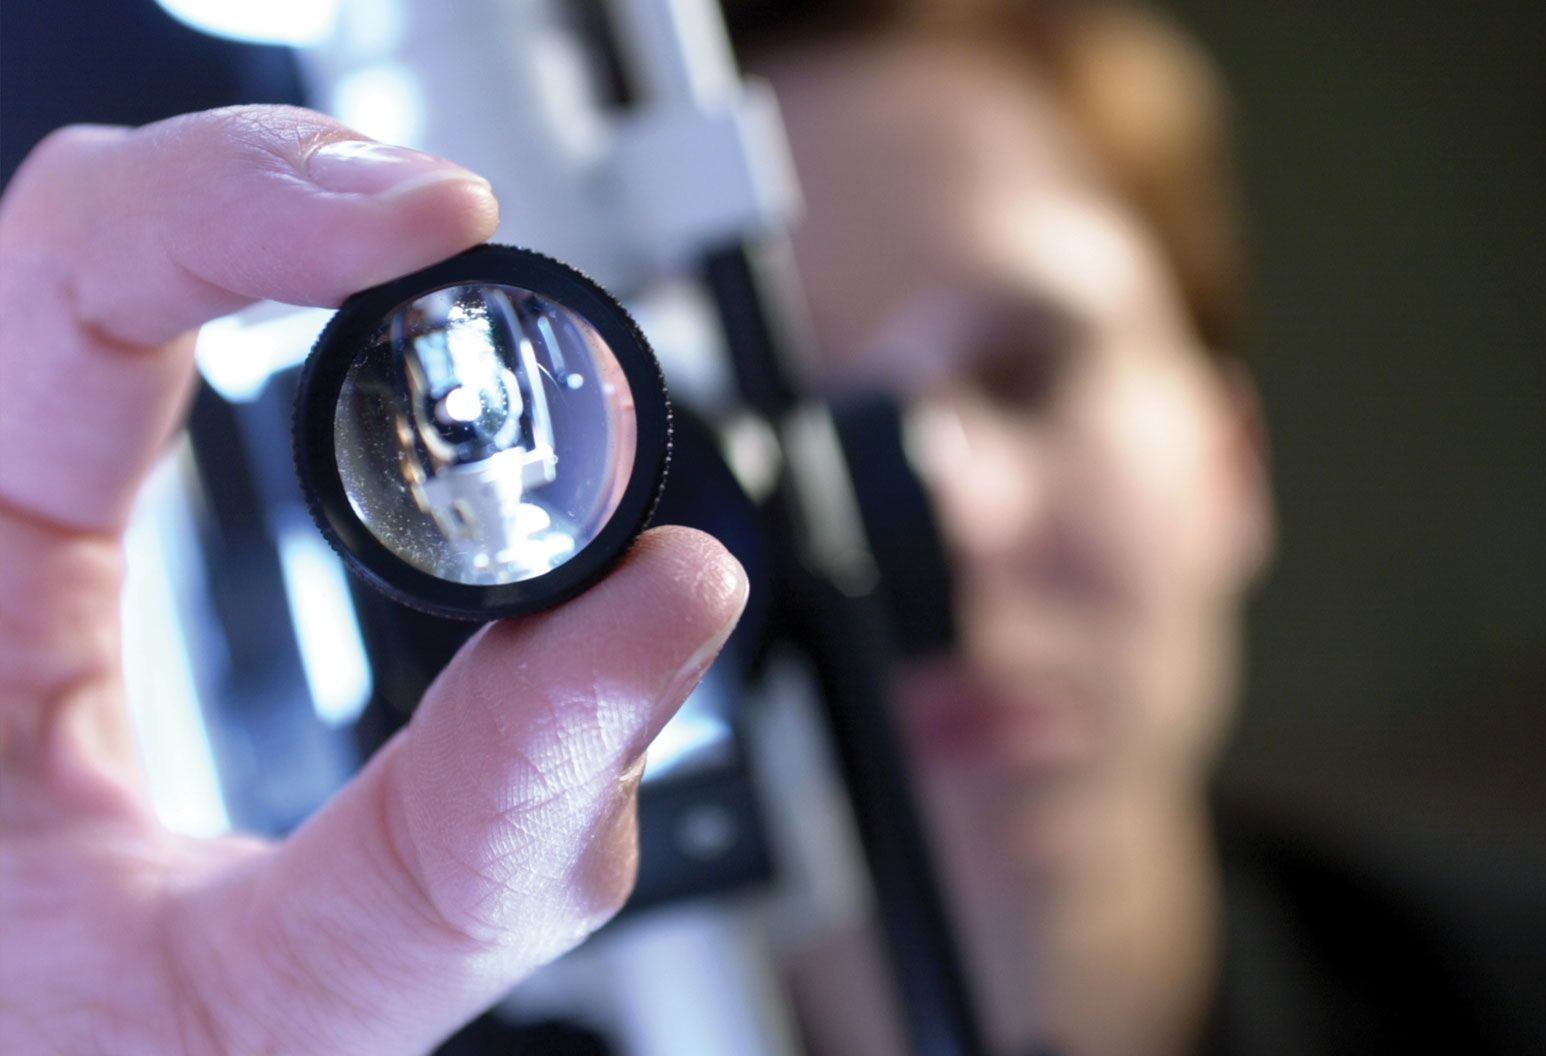 An ophthalmologist holds a lens closely